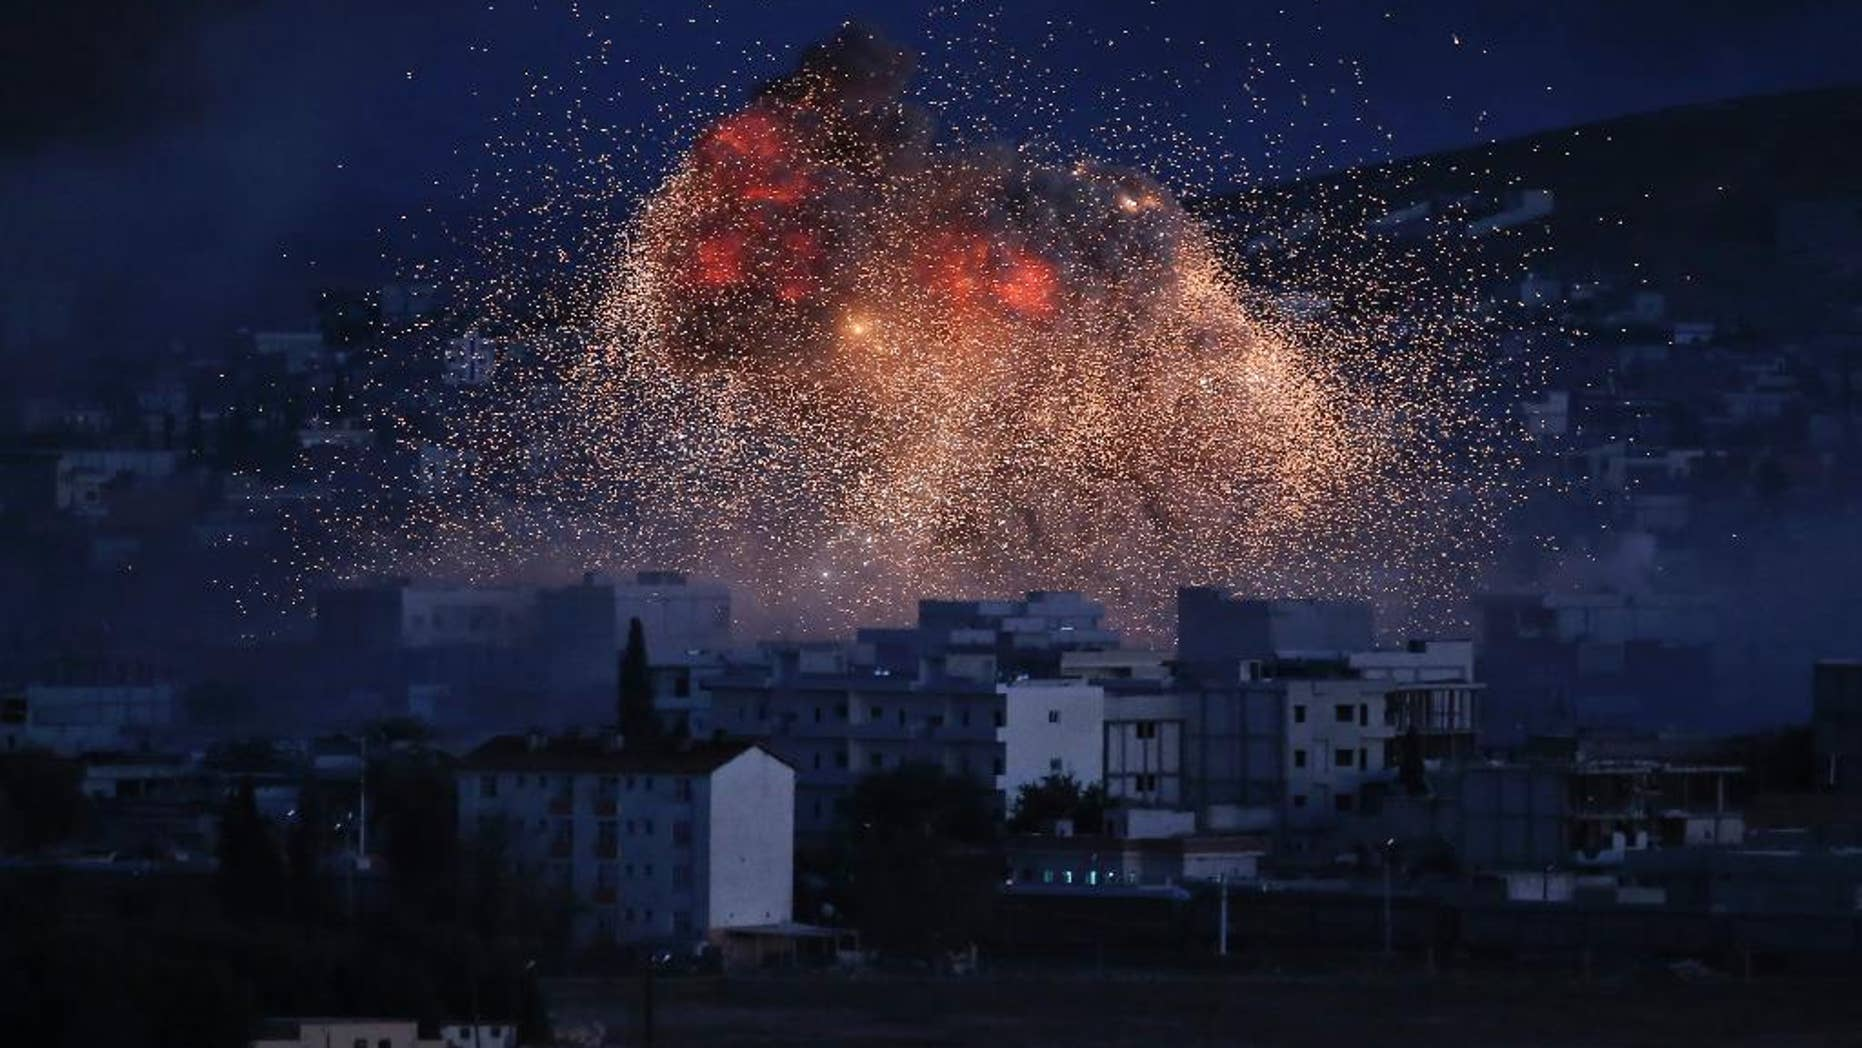 FILE - In this Monday, Oct. 20, 2014 file photo, thick smoke and flames from an airstrike by the U.S.-led coalition rise in Kobani, Syria, as seen from a hilltop on the outskirts of Suruc, at the Turkey-Syria border. Al-Qaida is using U.S. airstrikes in Syria as a reason to extend olive branches to the renegade Islamic State group, saying the two should stop feuding and join forces to attack Western targets,  a reunification that intelligence analysts say would allow al-Qaida to capitalize on the younger group's ruthless advance across the region. (AP Photo, Lefteris Pitarakis, File)